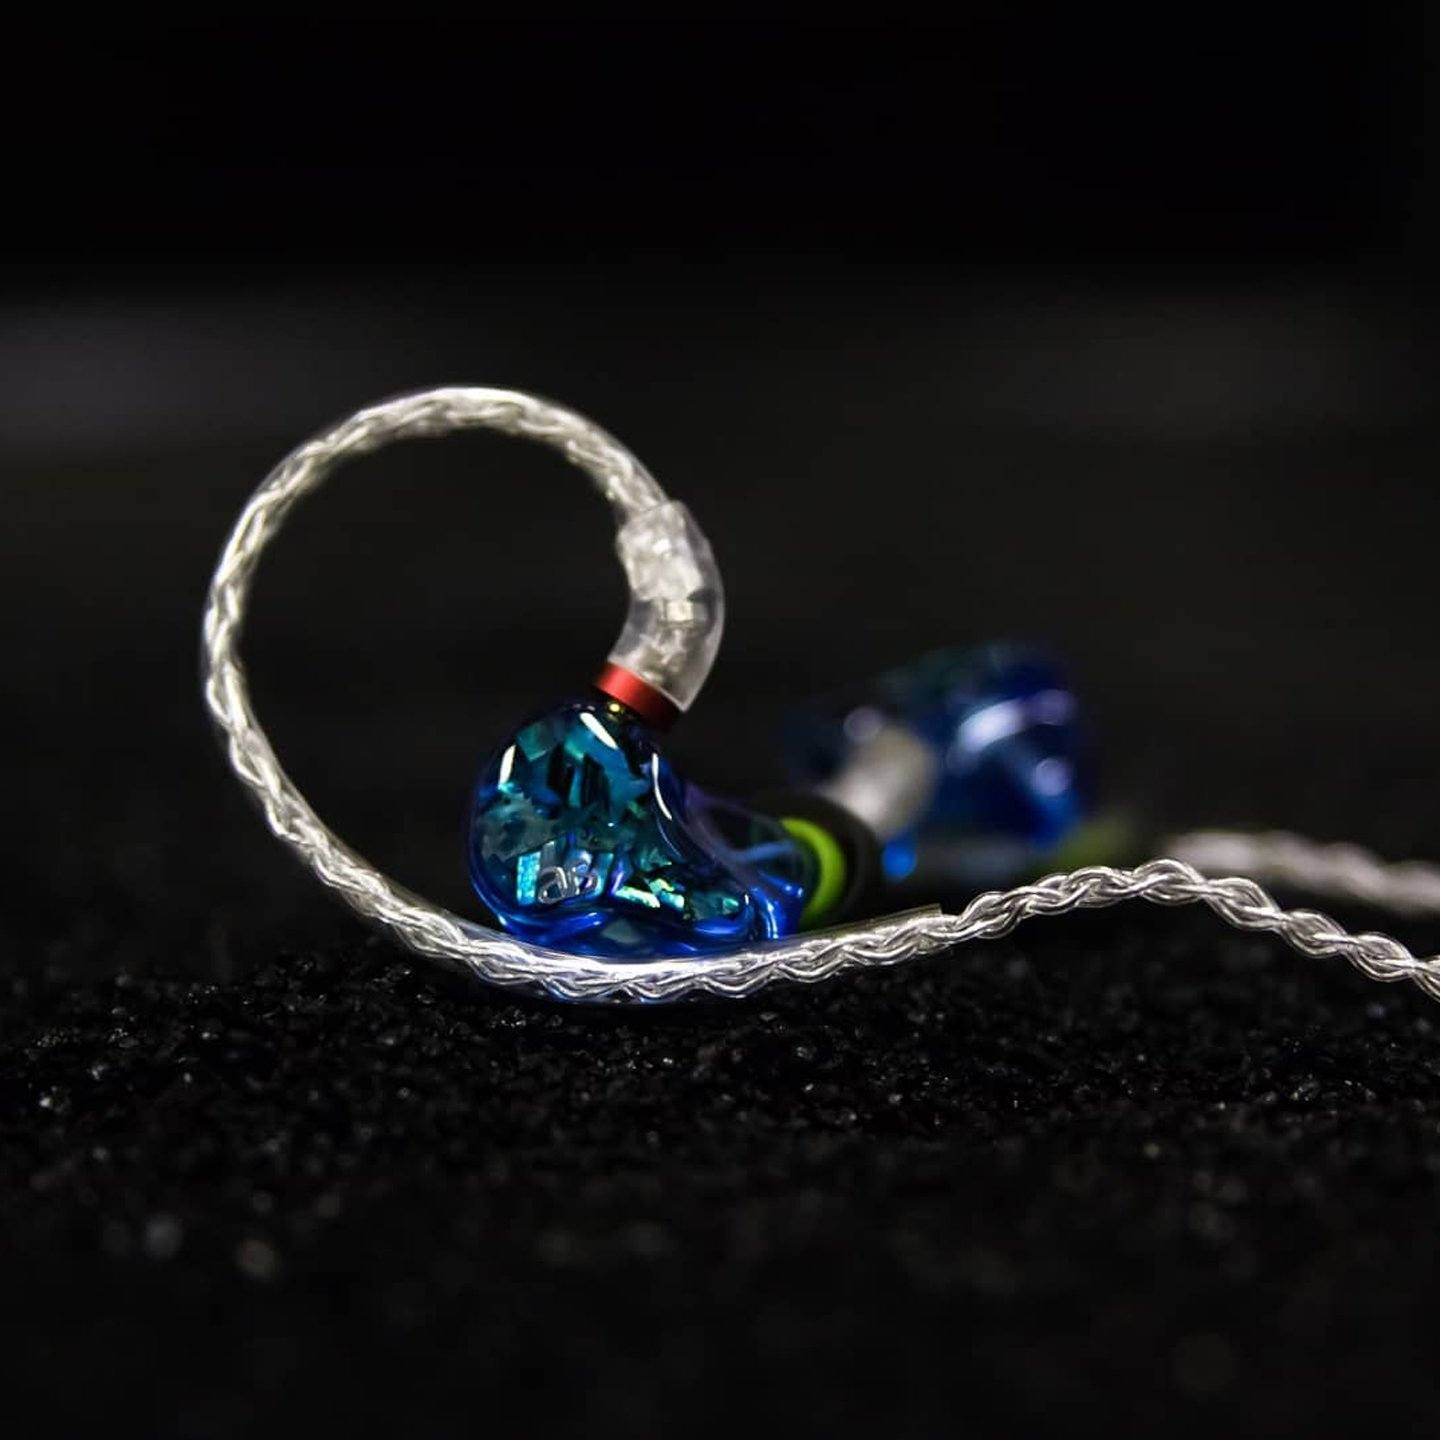 Audiosense DT100 Single Balanced Armature IEM Released